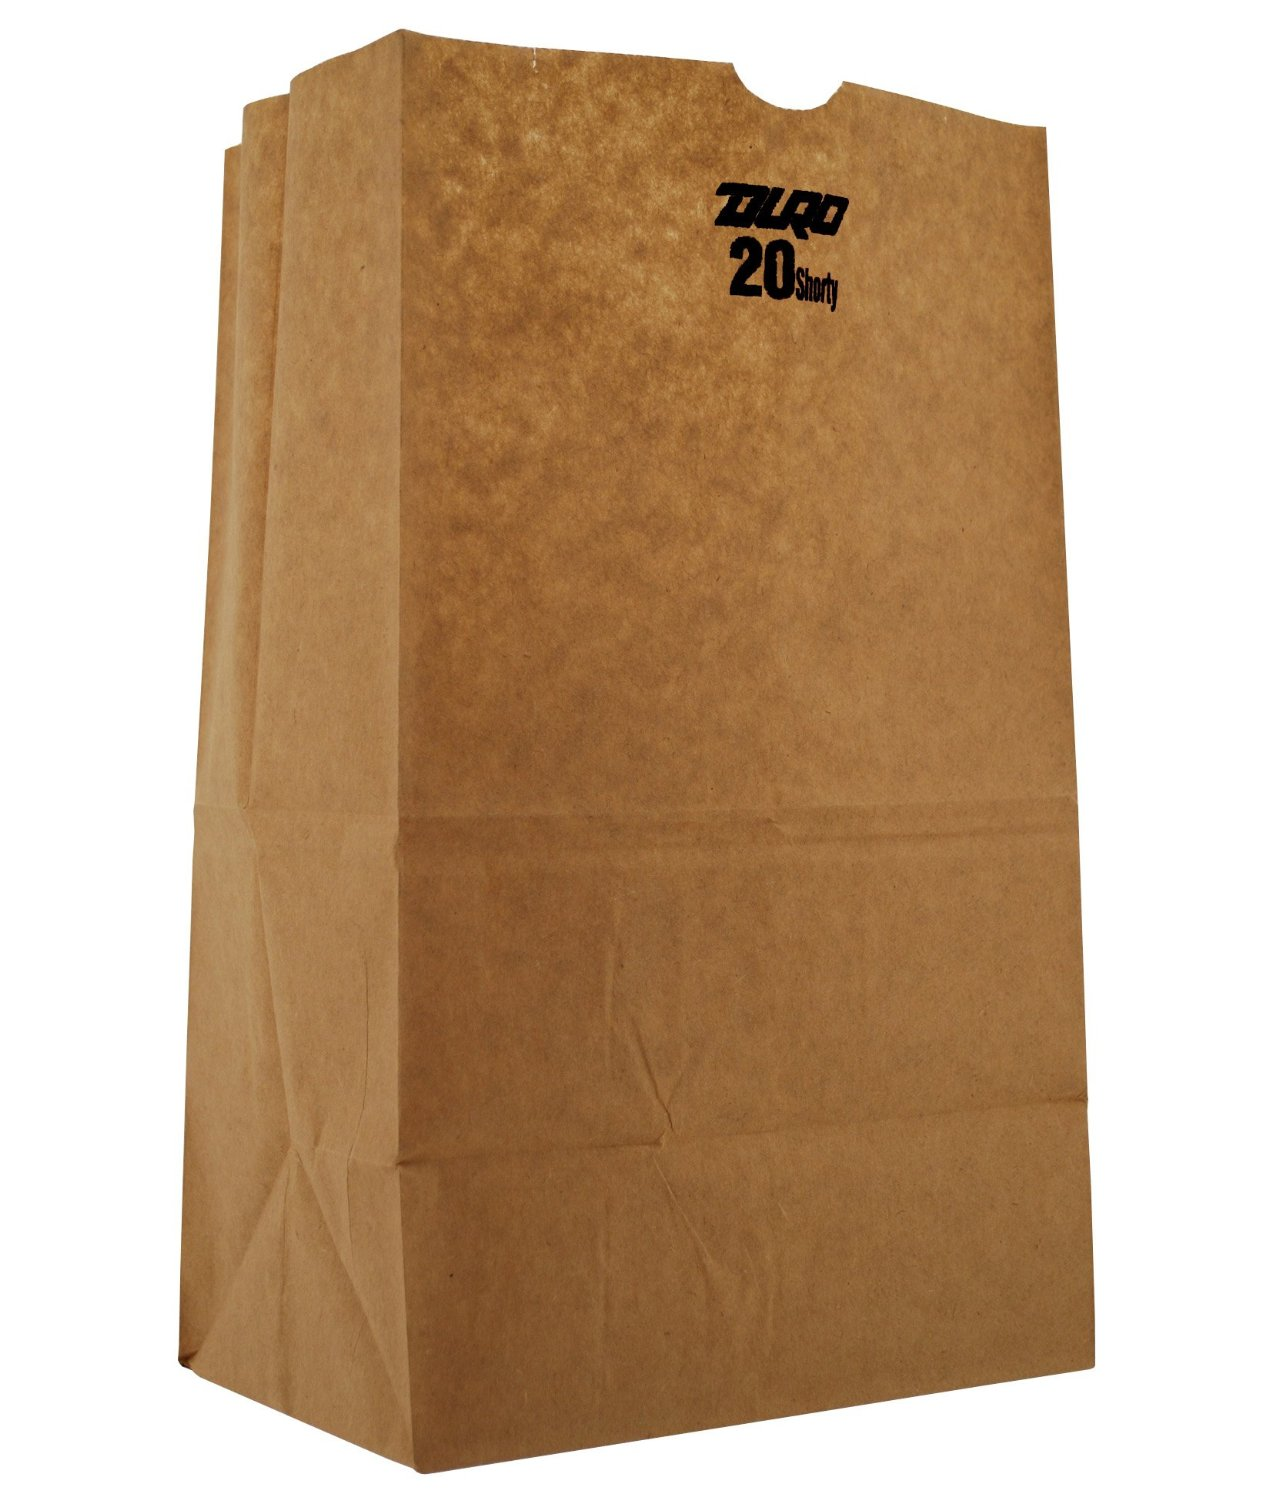 Duro Bag Kraft 20lb Shorty Husky Bag 29821